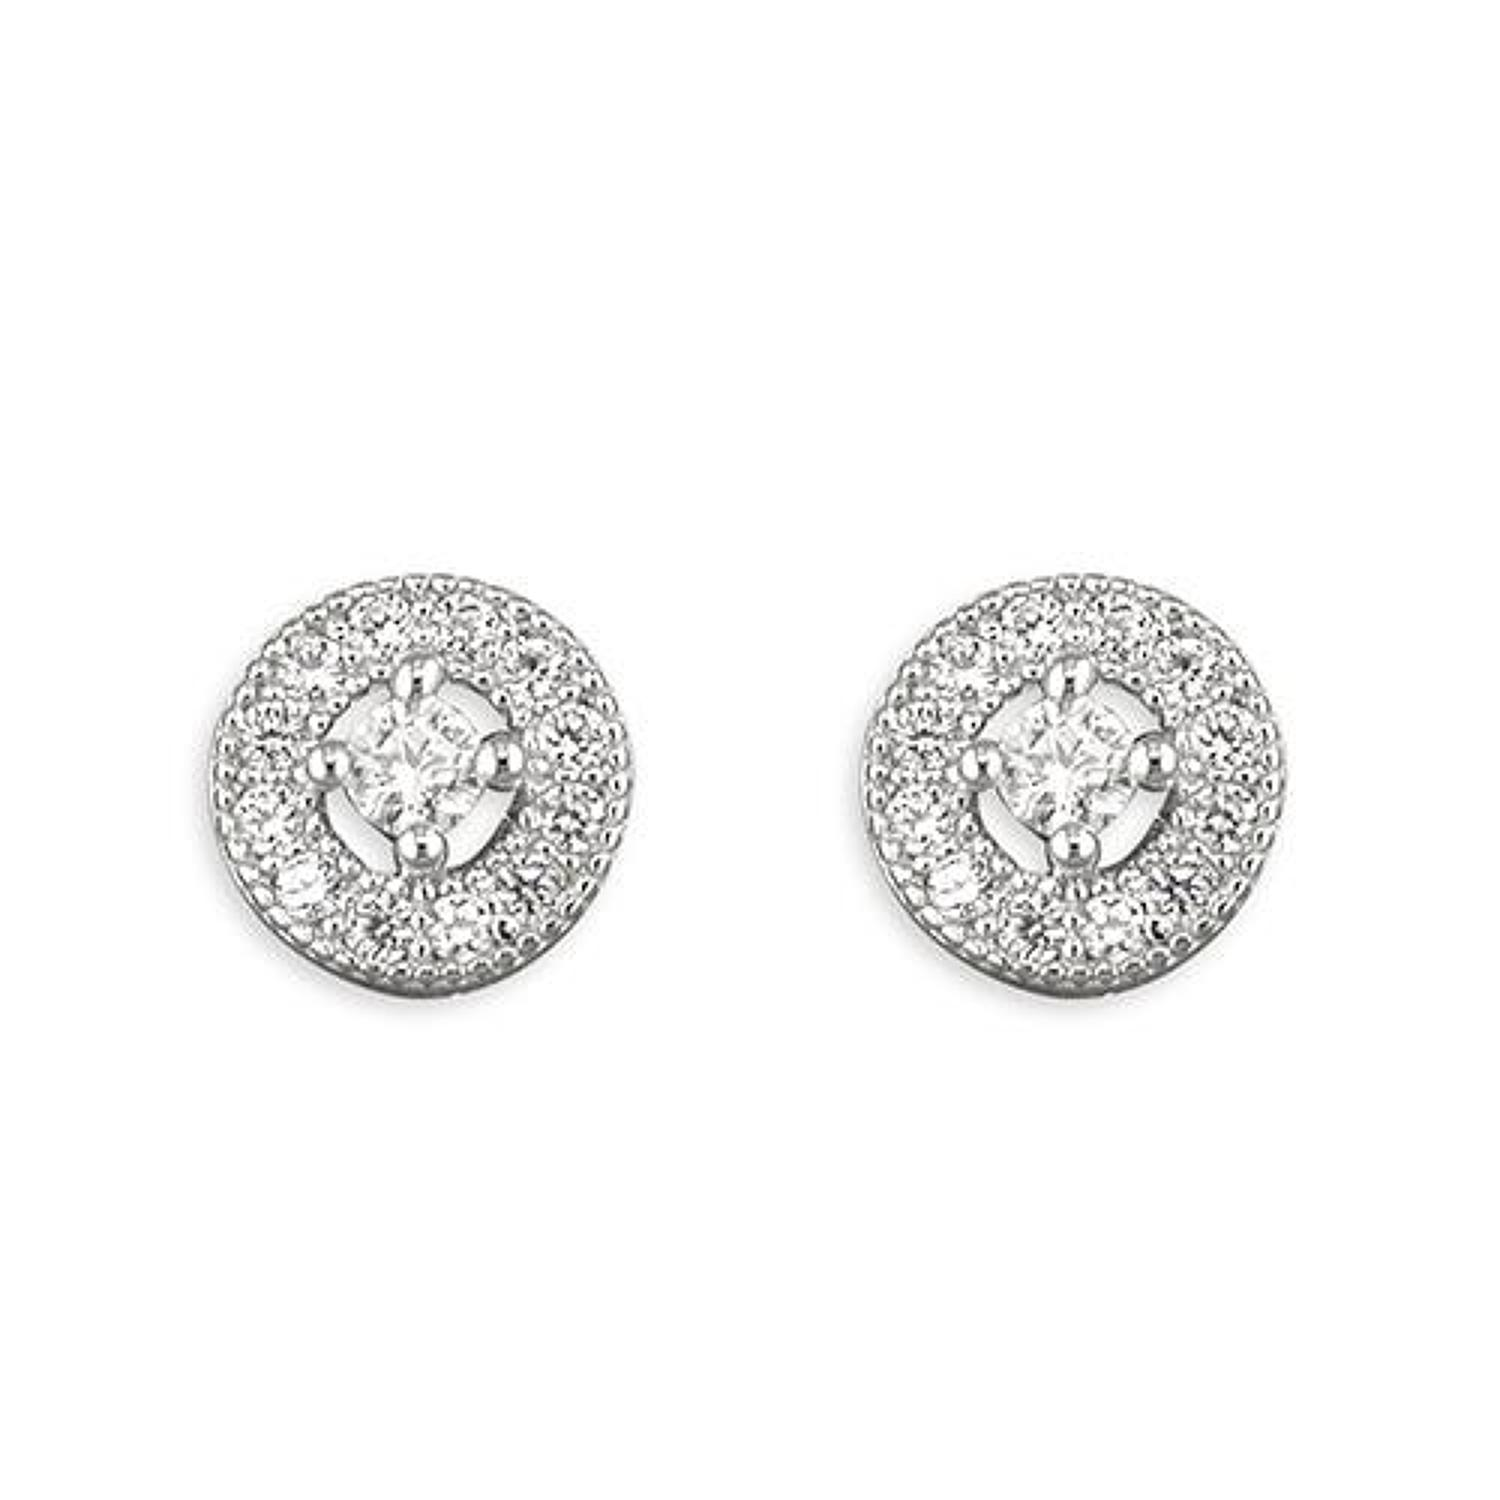 Sterling Silver Small Cubic Zirconia Cluster Stud Earrings